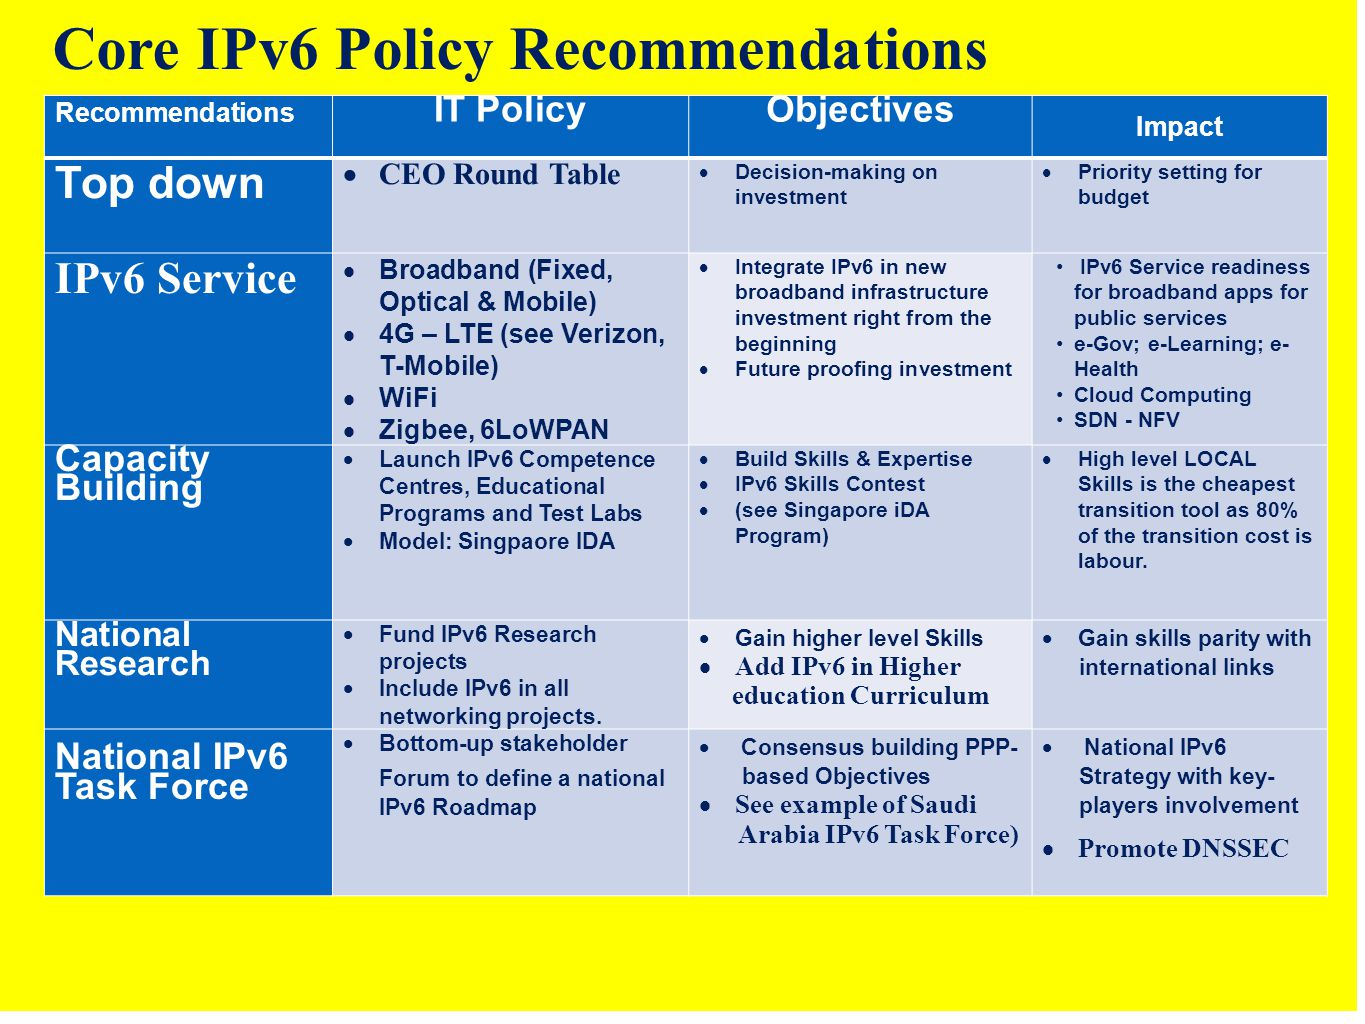 Recommendations IT PolicyObjectives Impact Top down  CEO Round Table  Decision-making on investment  Priority setting for budget IPv6 Service  Broadband (Fixed, Optical & Mobile)  4G – LTE (see Verizon, T-Mobile)  WiFi  Zigbee, 6LoWPAN  Integrate IPv6 in new broadband infrastructure investment right from the beginning  Future proofing investment IPv6 Service readiness for broadband apps for public services e-Gov; e-Learning; e- Health Cloud Computing SDN - NFV Capacity Building  Launch IPv6 Competence Centres, Educational Programs and Test Labs  Model: Singpaore IDA  Build Skills & Expertise  IPv6 Skills Contest  (see Singapore iDA Program)  High level LOCAL Skills is the cheapest transition tool as 80% of the transition cost is labour.